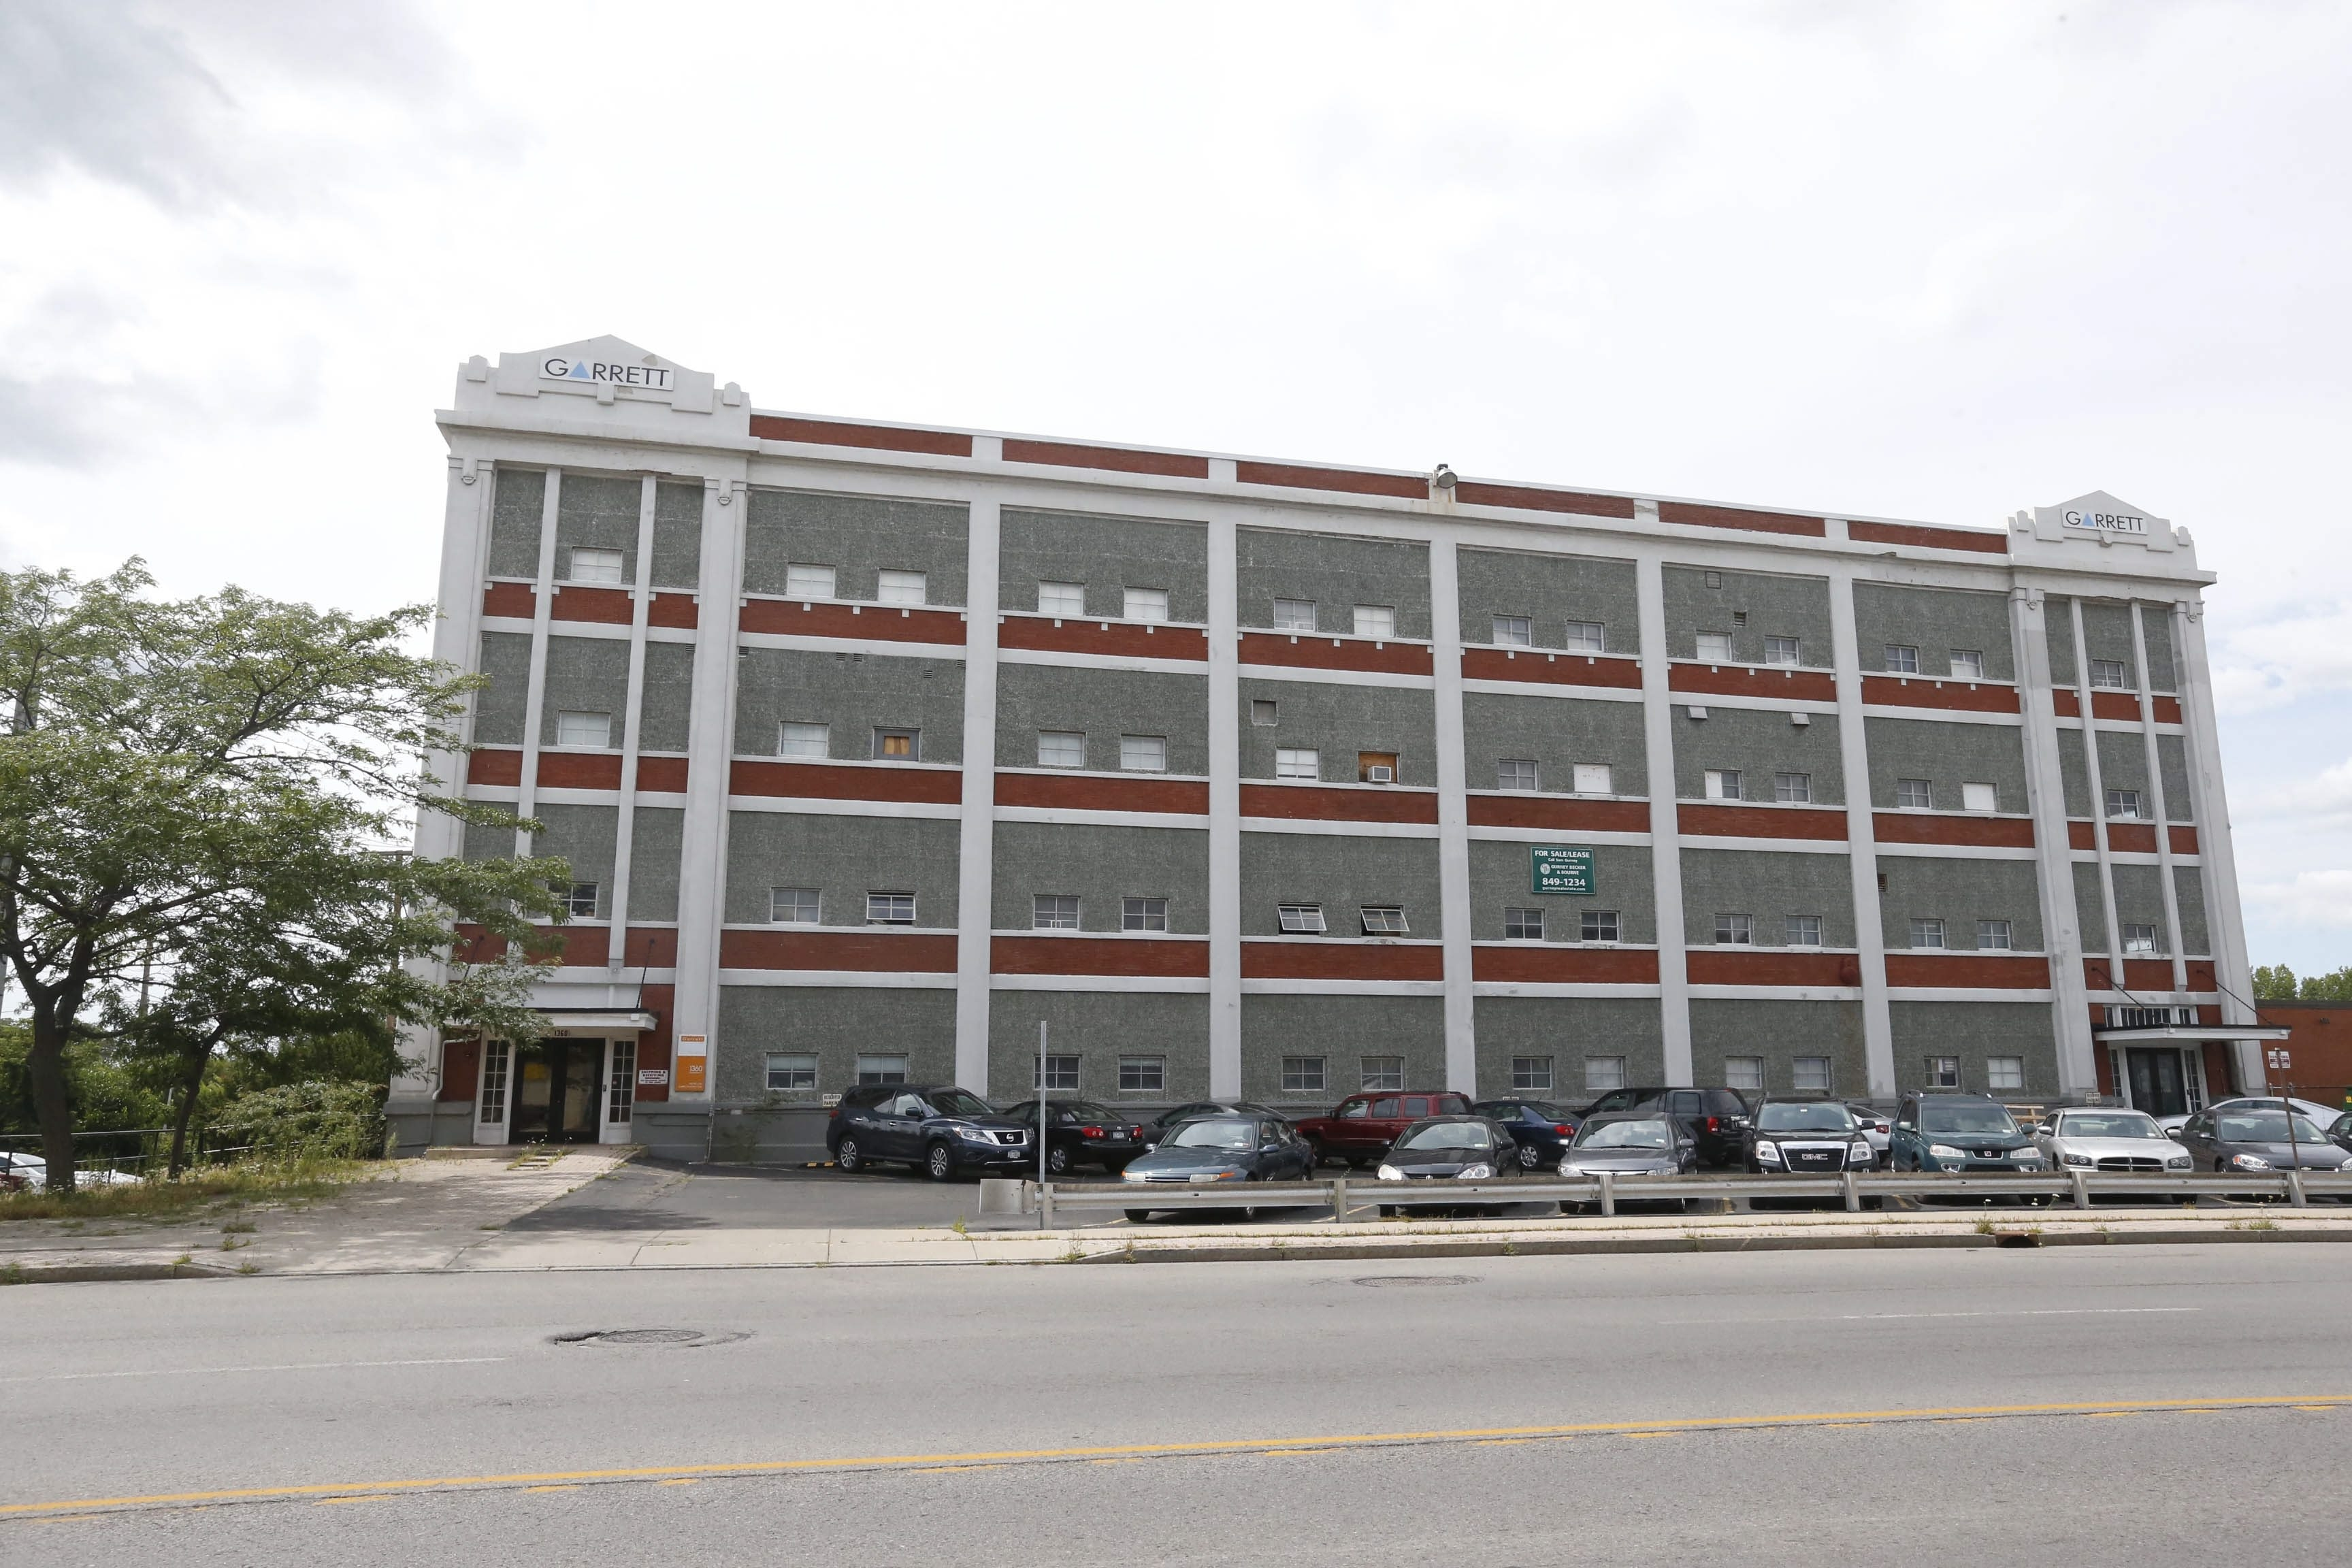 Ciminelli Real Estate Corp. is wrapping up its purchase of the Garrett Leather building at 1360 Niagara St. The company plans a $12 million to $14 million conversion, another big project in the rebounding neighborhood.